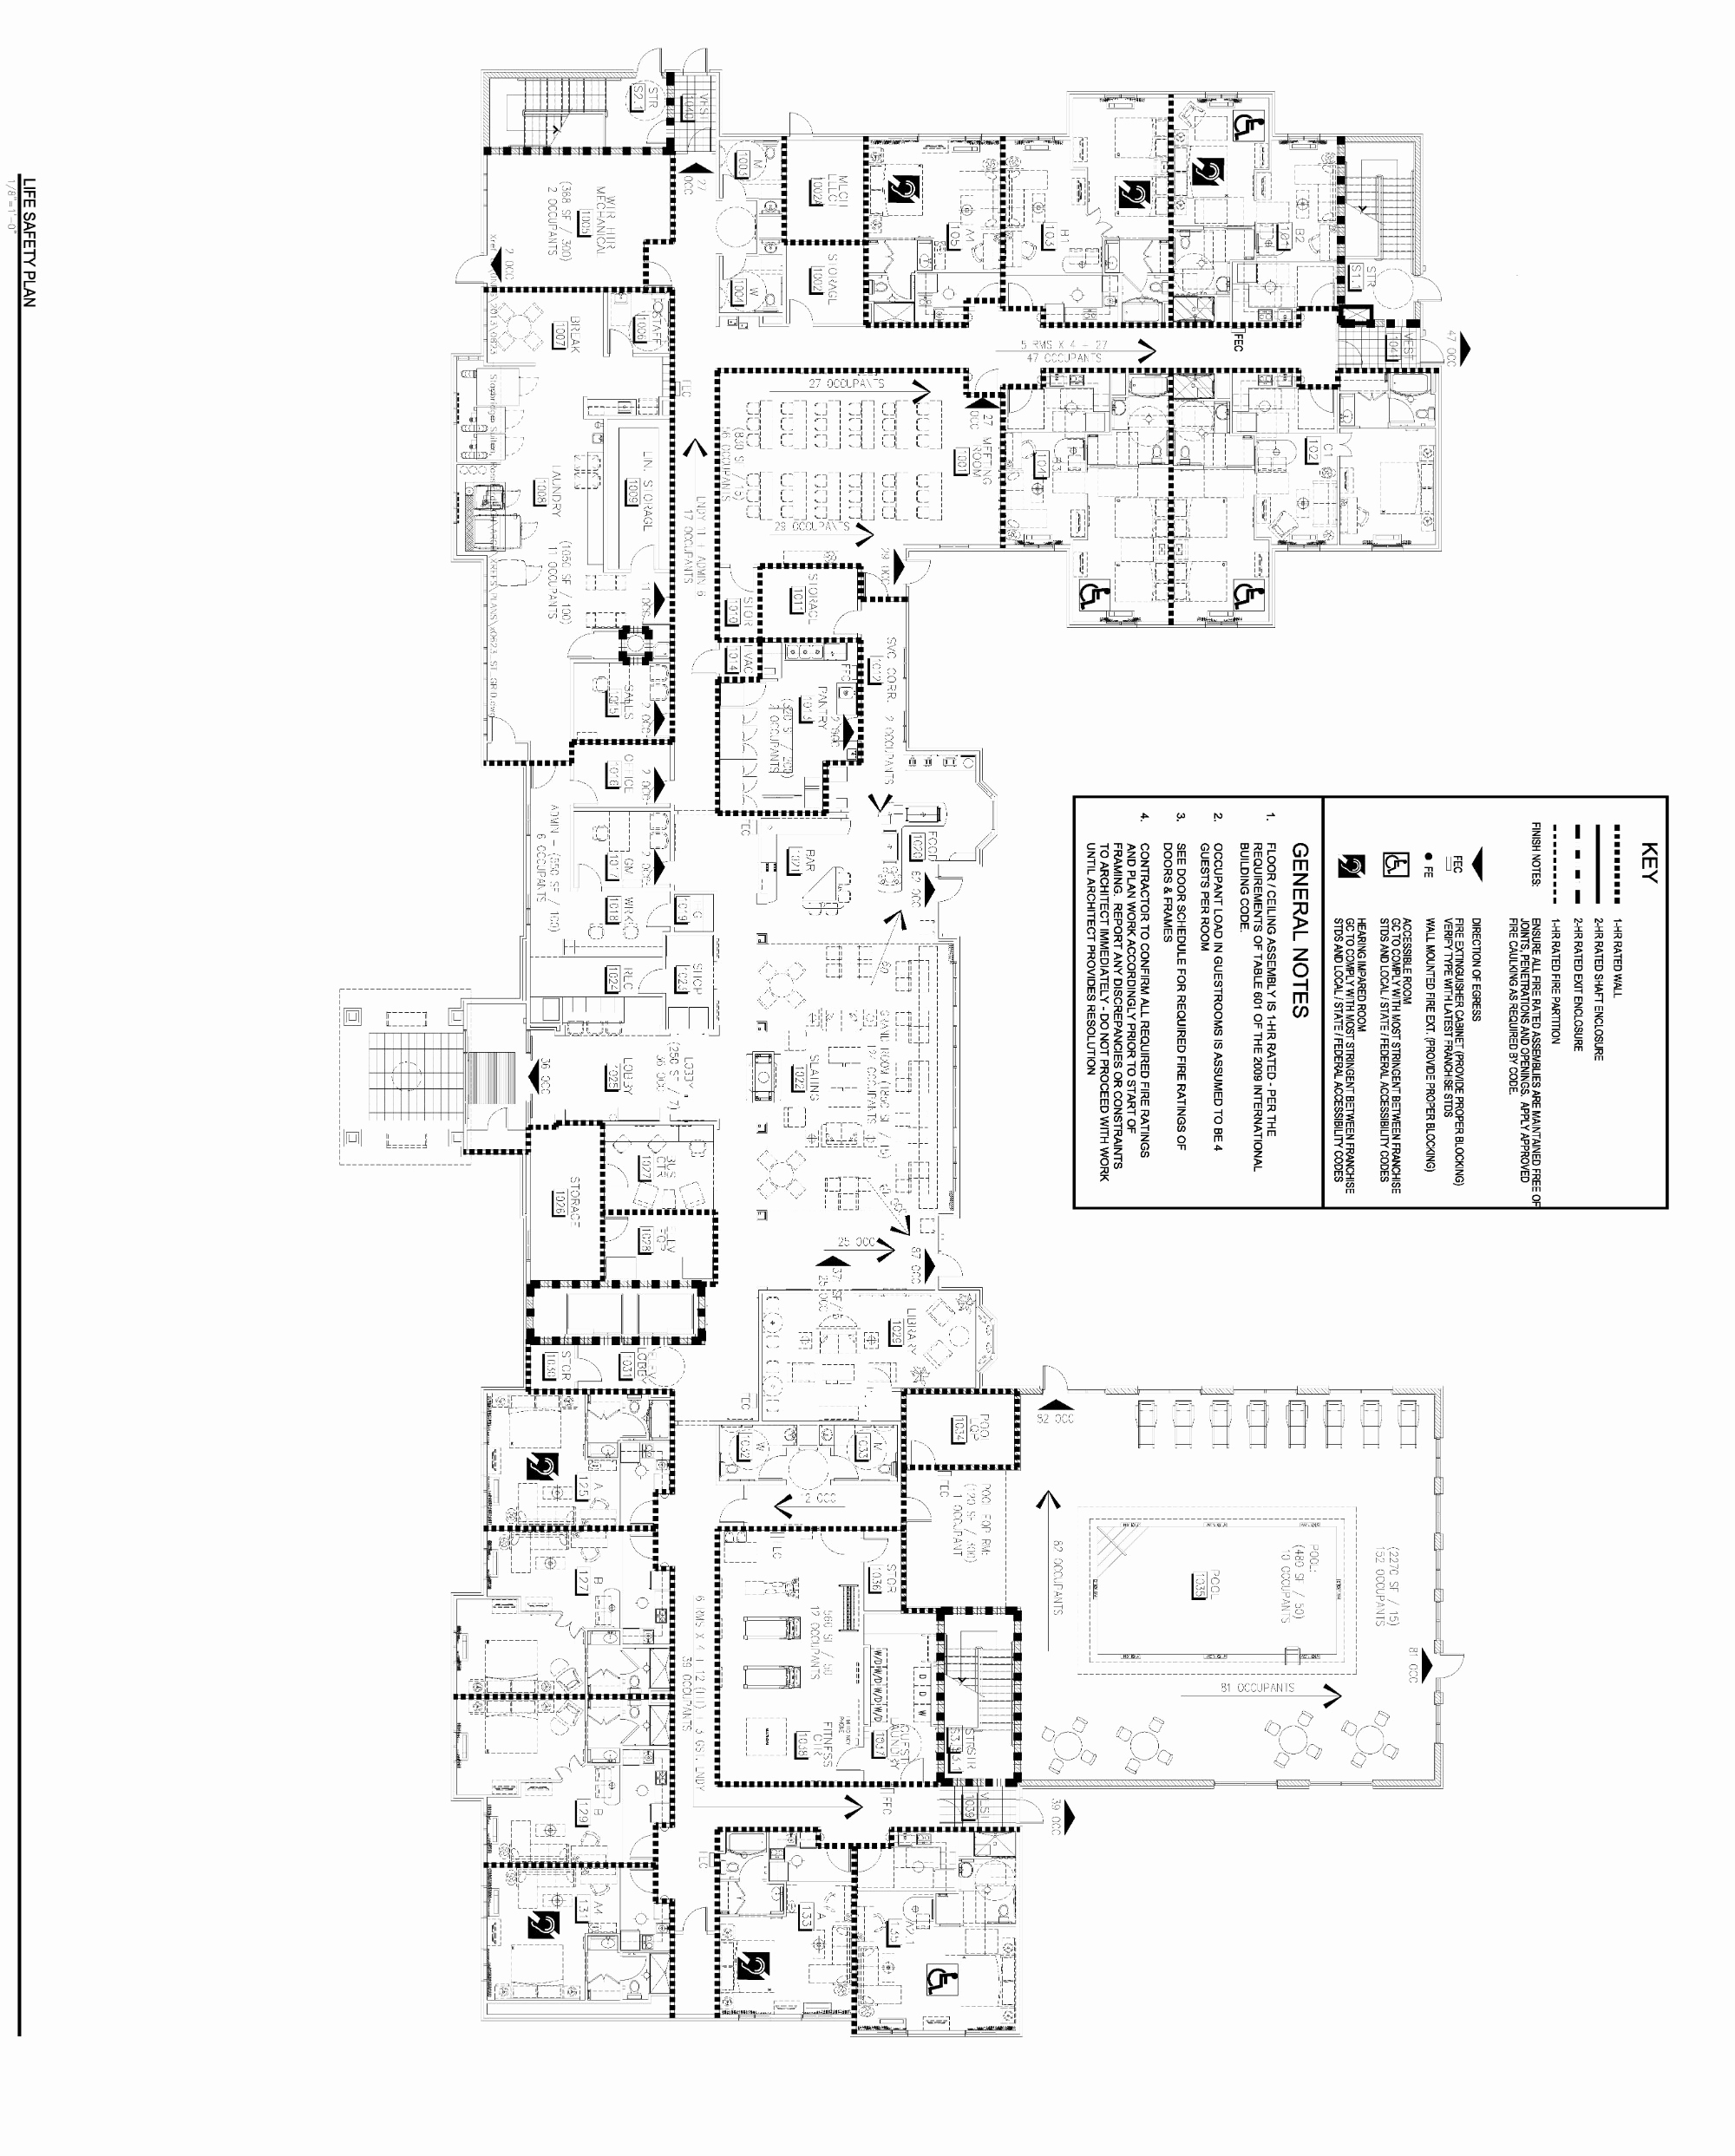 hight resolution of 2000x2486 architectural floor plans beautiful architecture symbols cliparts